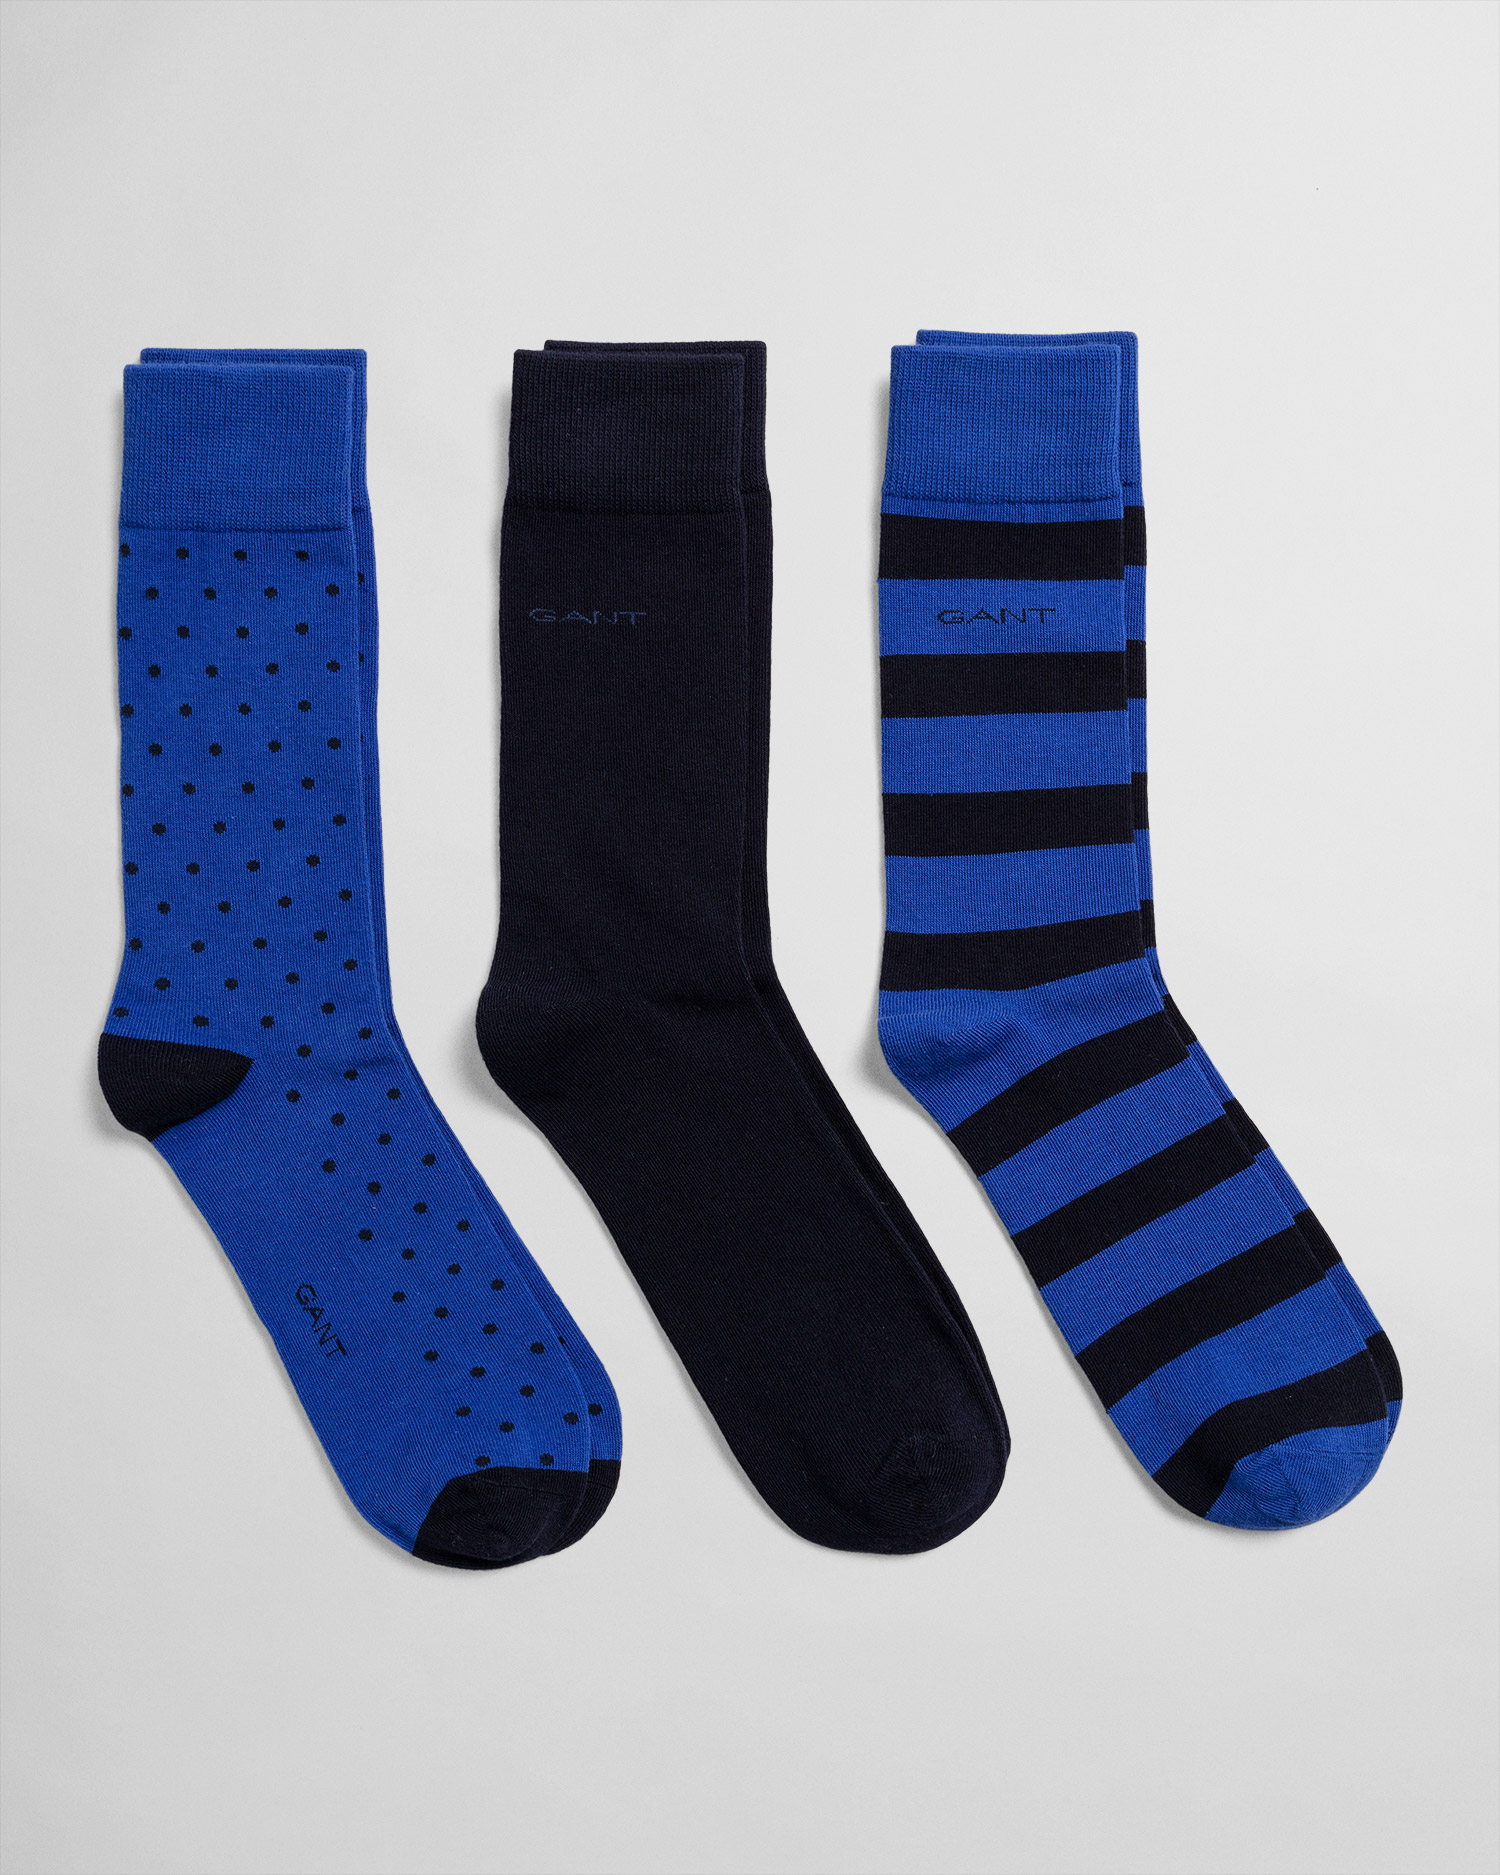 GANT Mixed Socks 3-Pack - 9960155